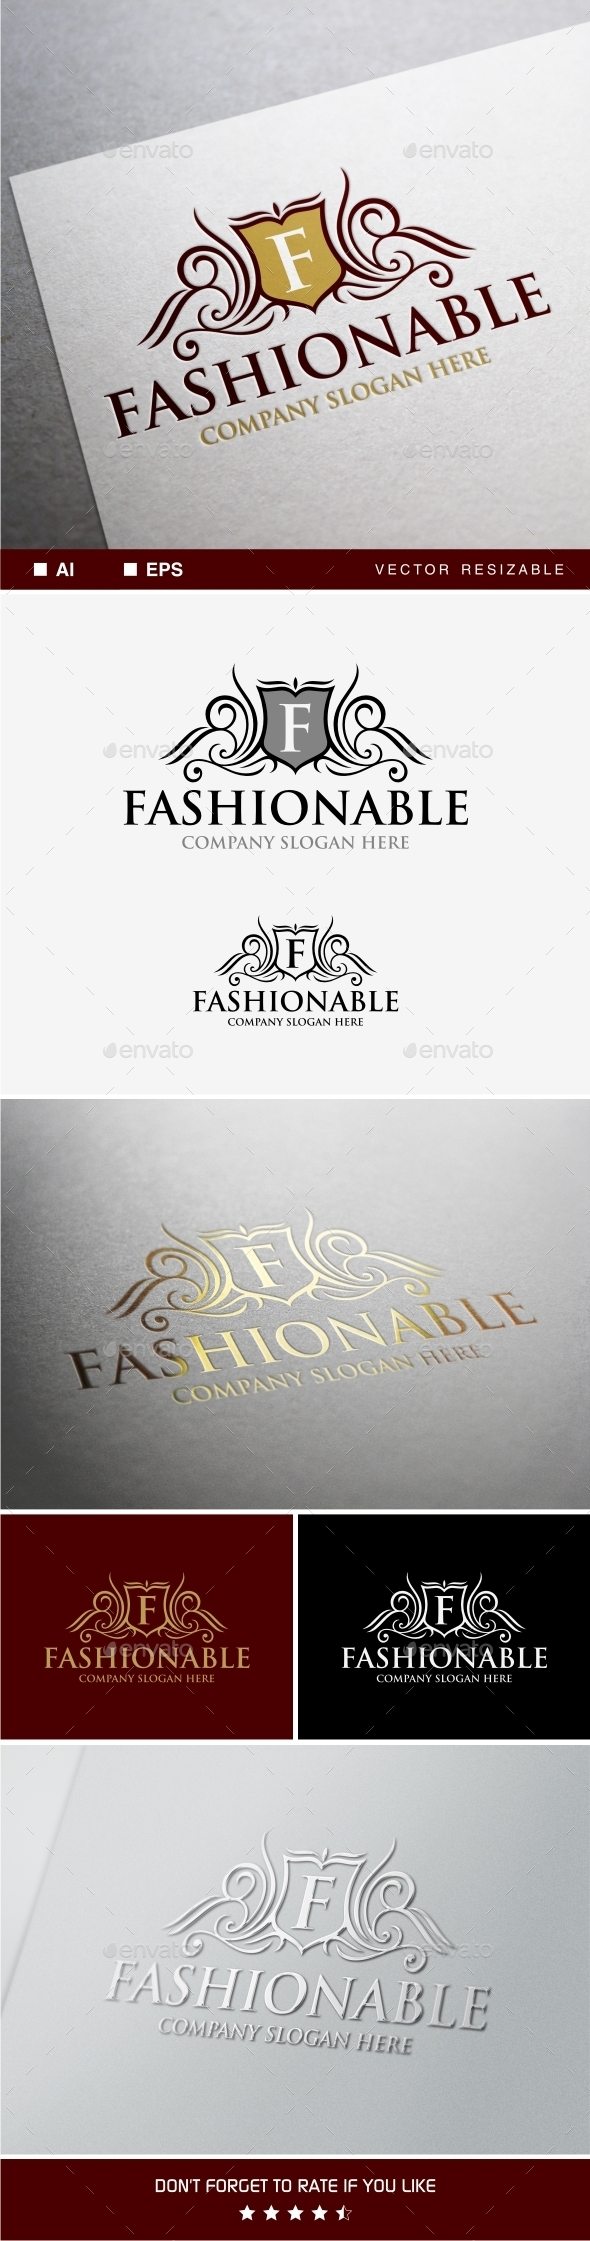 GraphicRiver Fashionable Logo Template 9909769